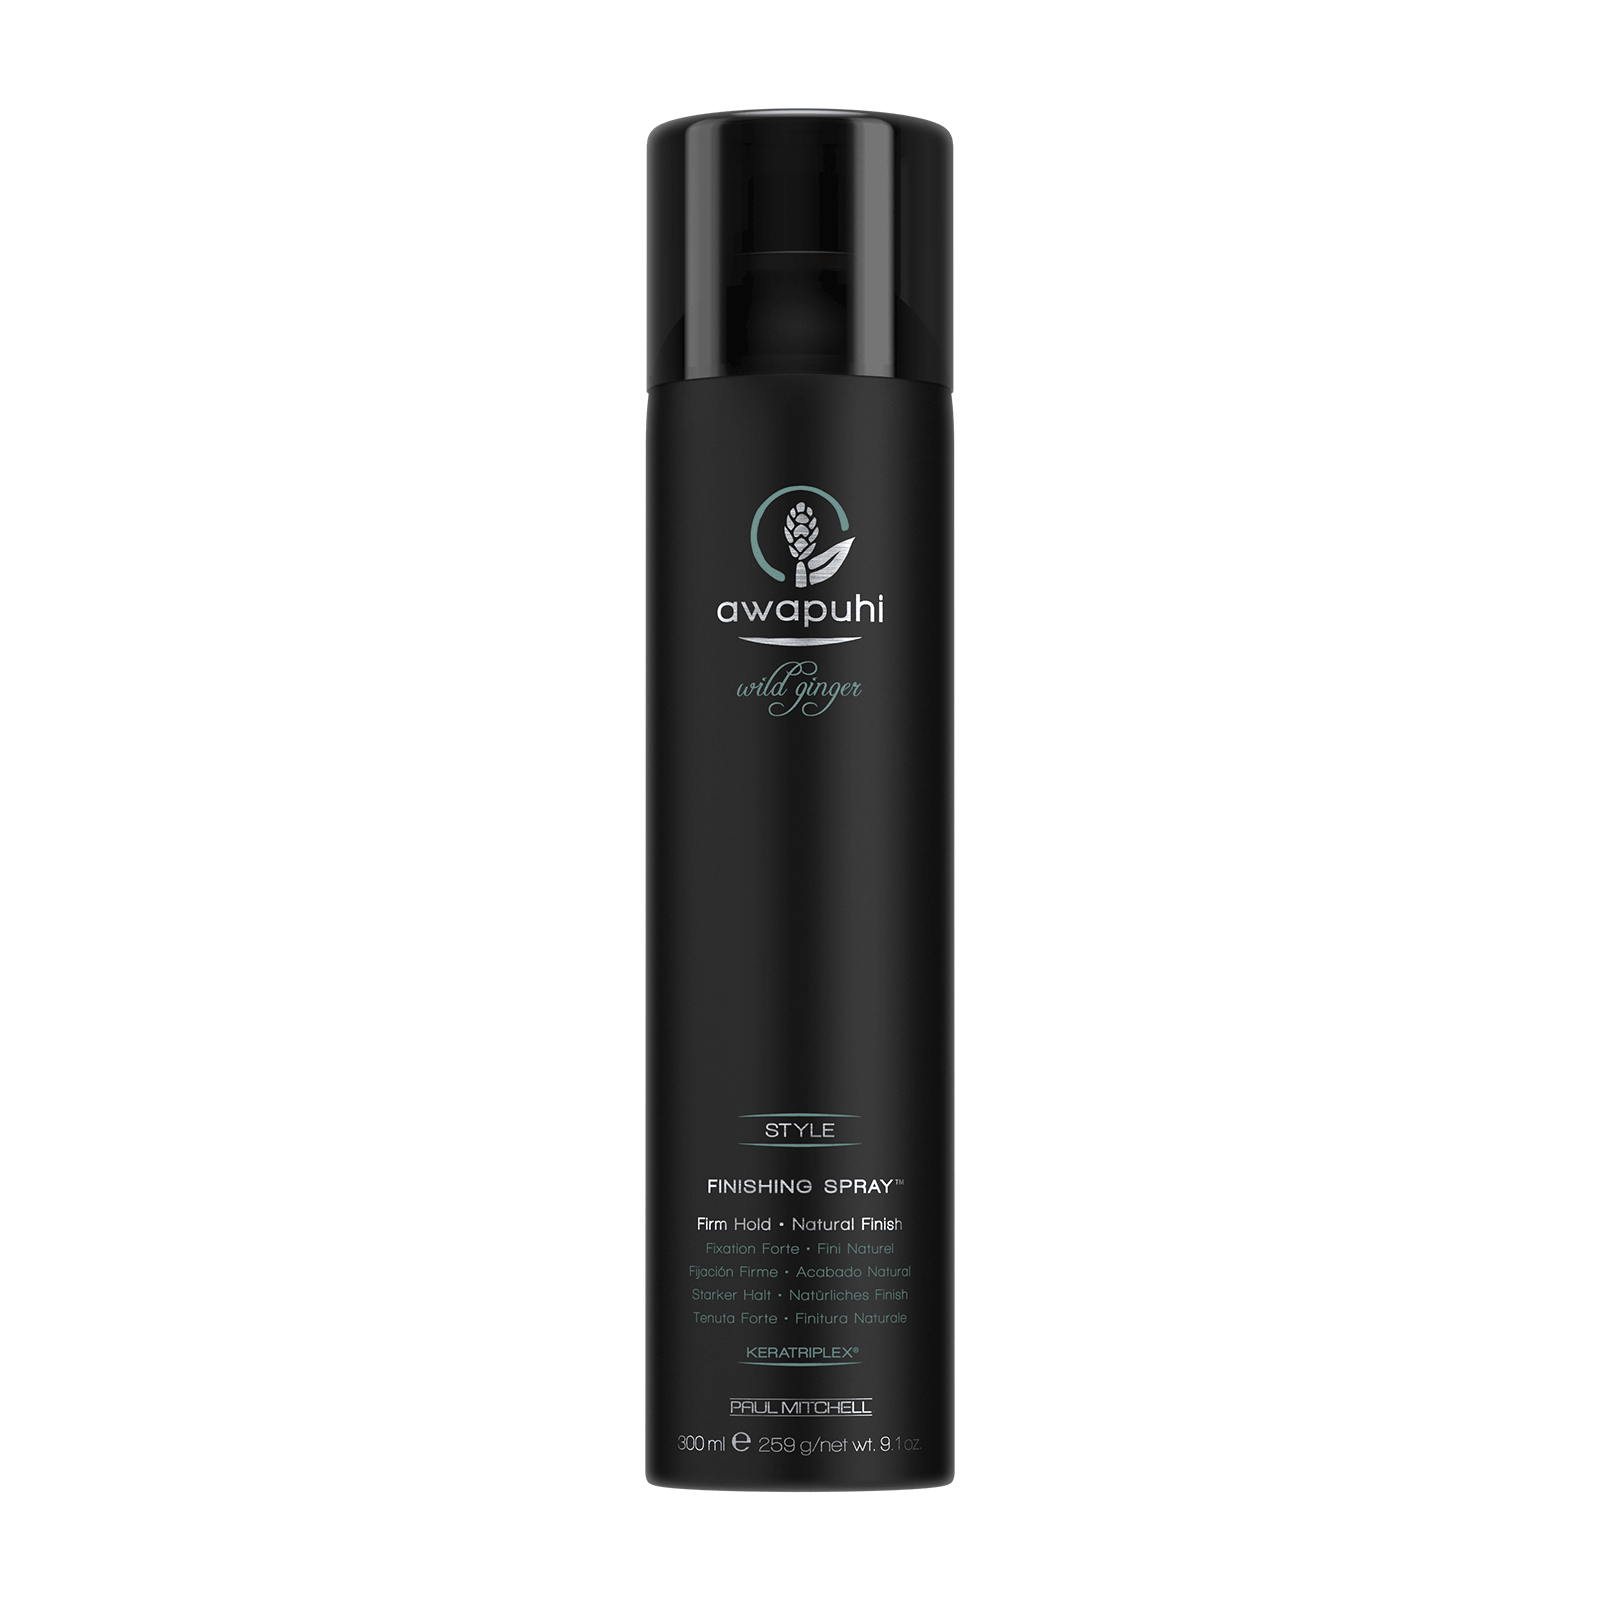 Awapuhi Wild Ginger Finishing Spray